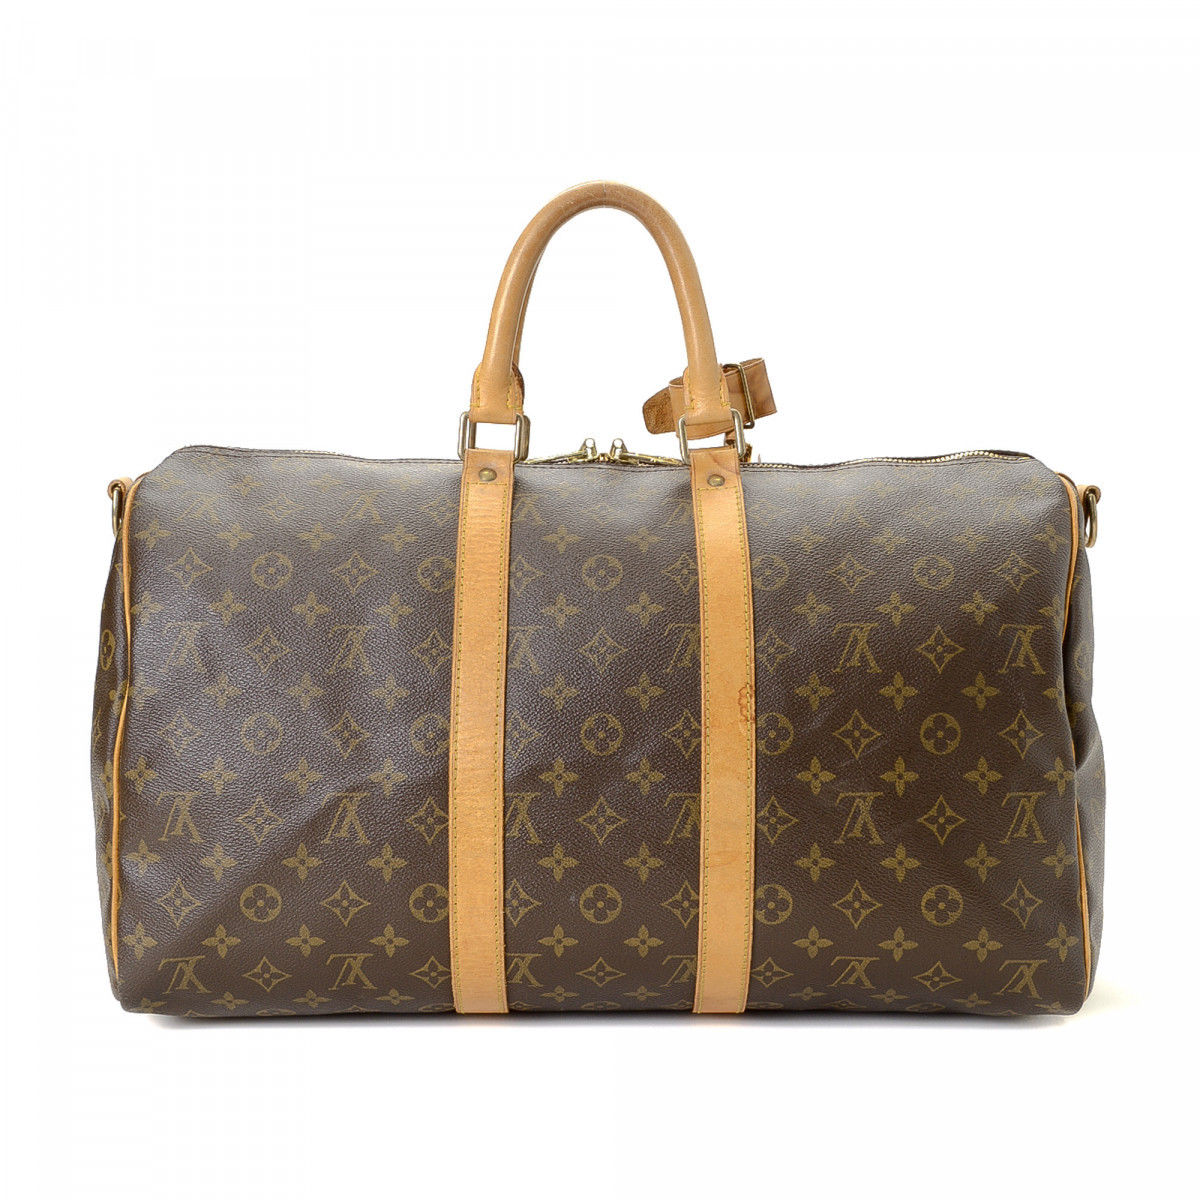 9478d4e5fbd6e0 Used Louis Vuitton Bags Toronto | Stanford Center for Opportunity ...